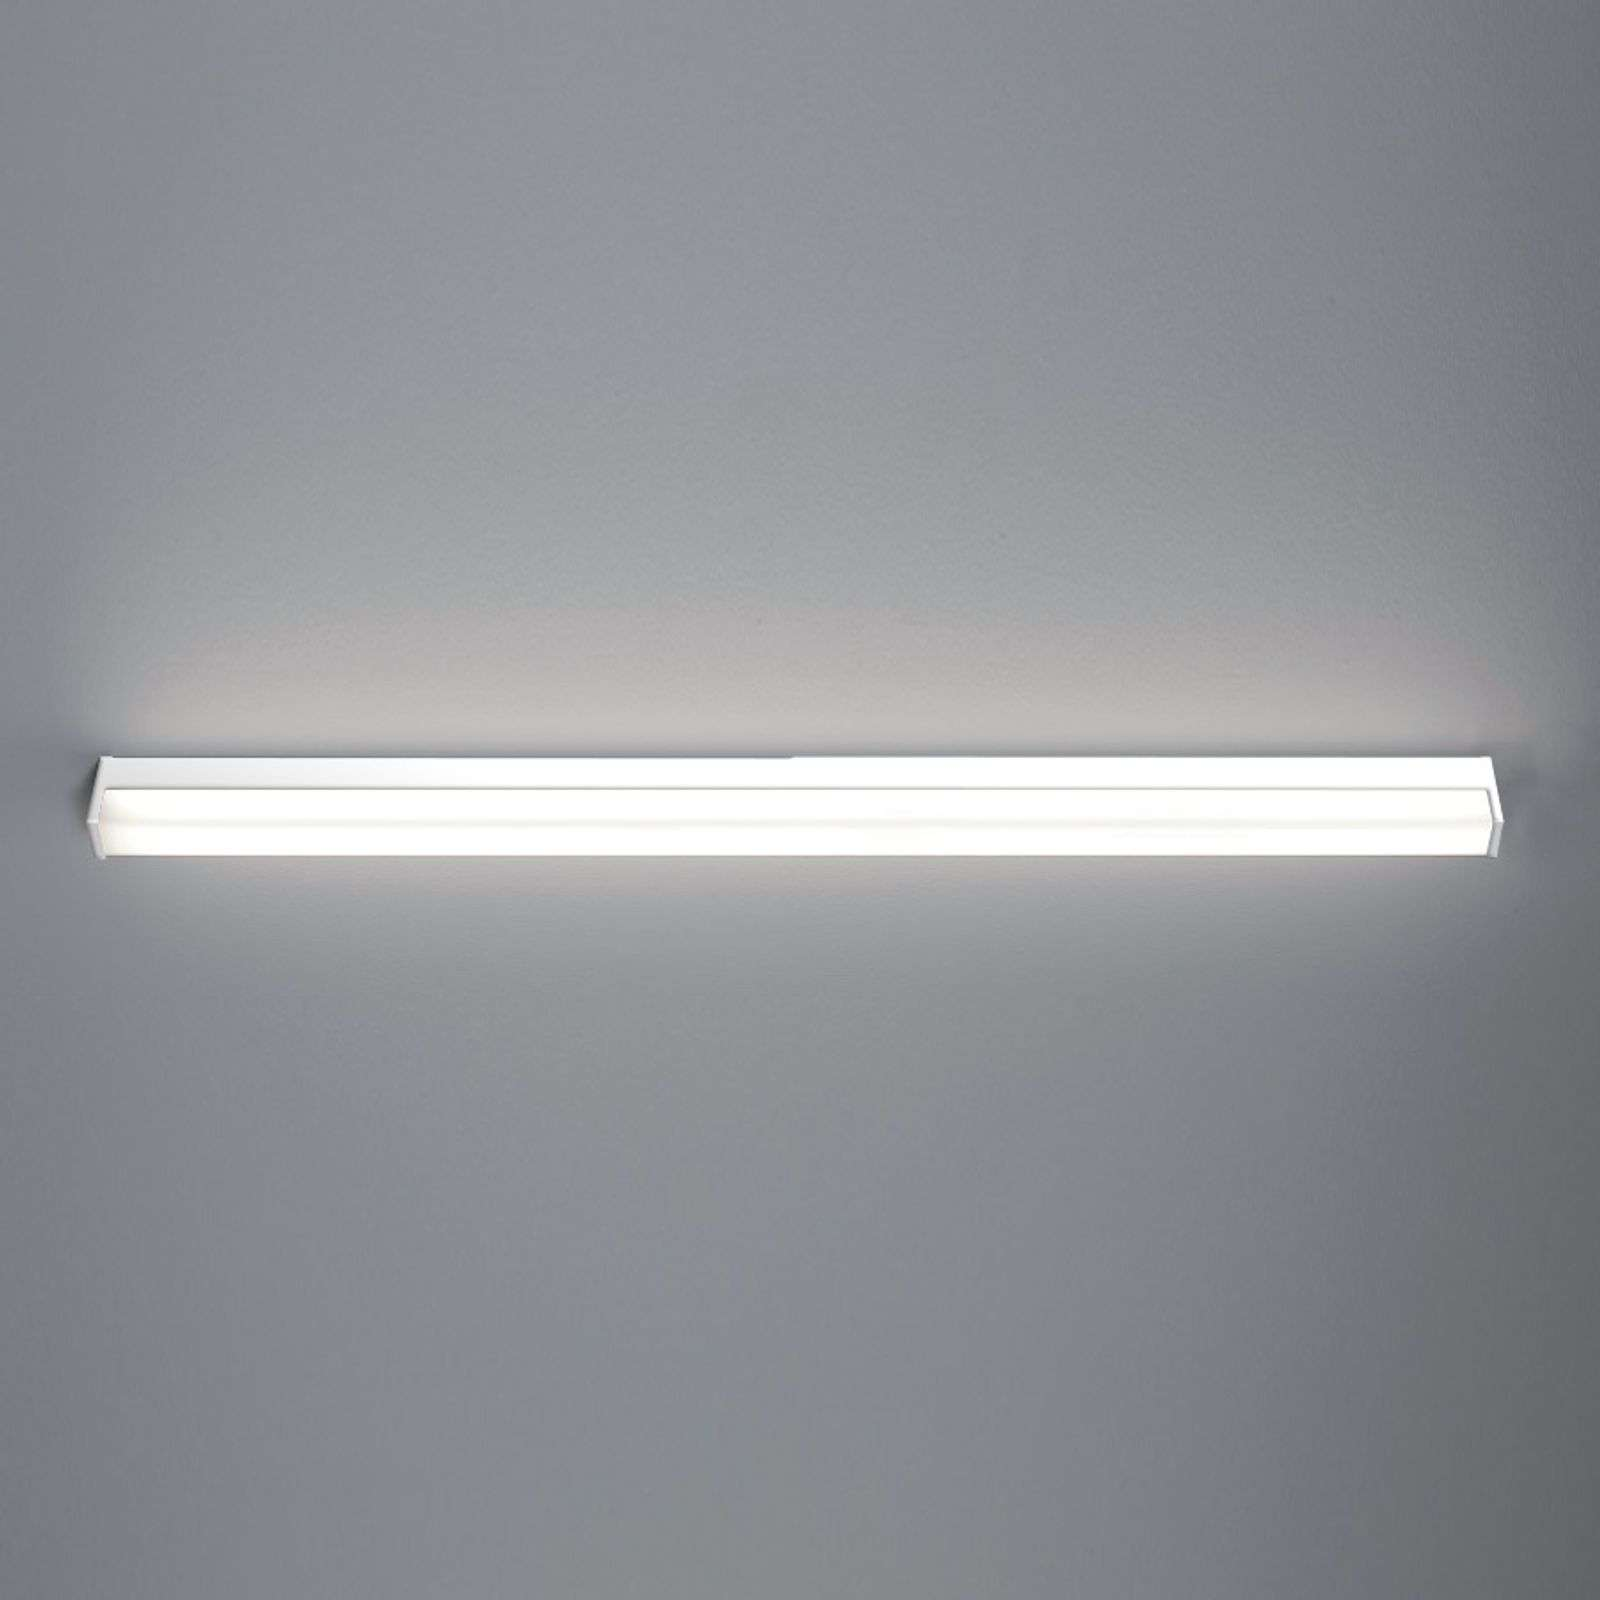 Applique LED PARI, 120 cm, blanc